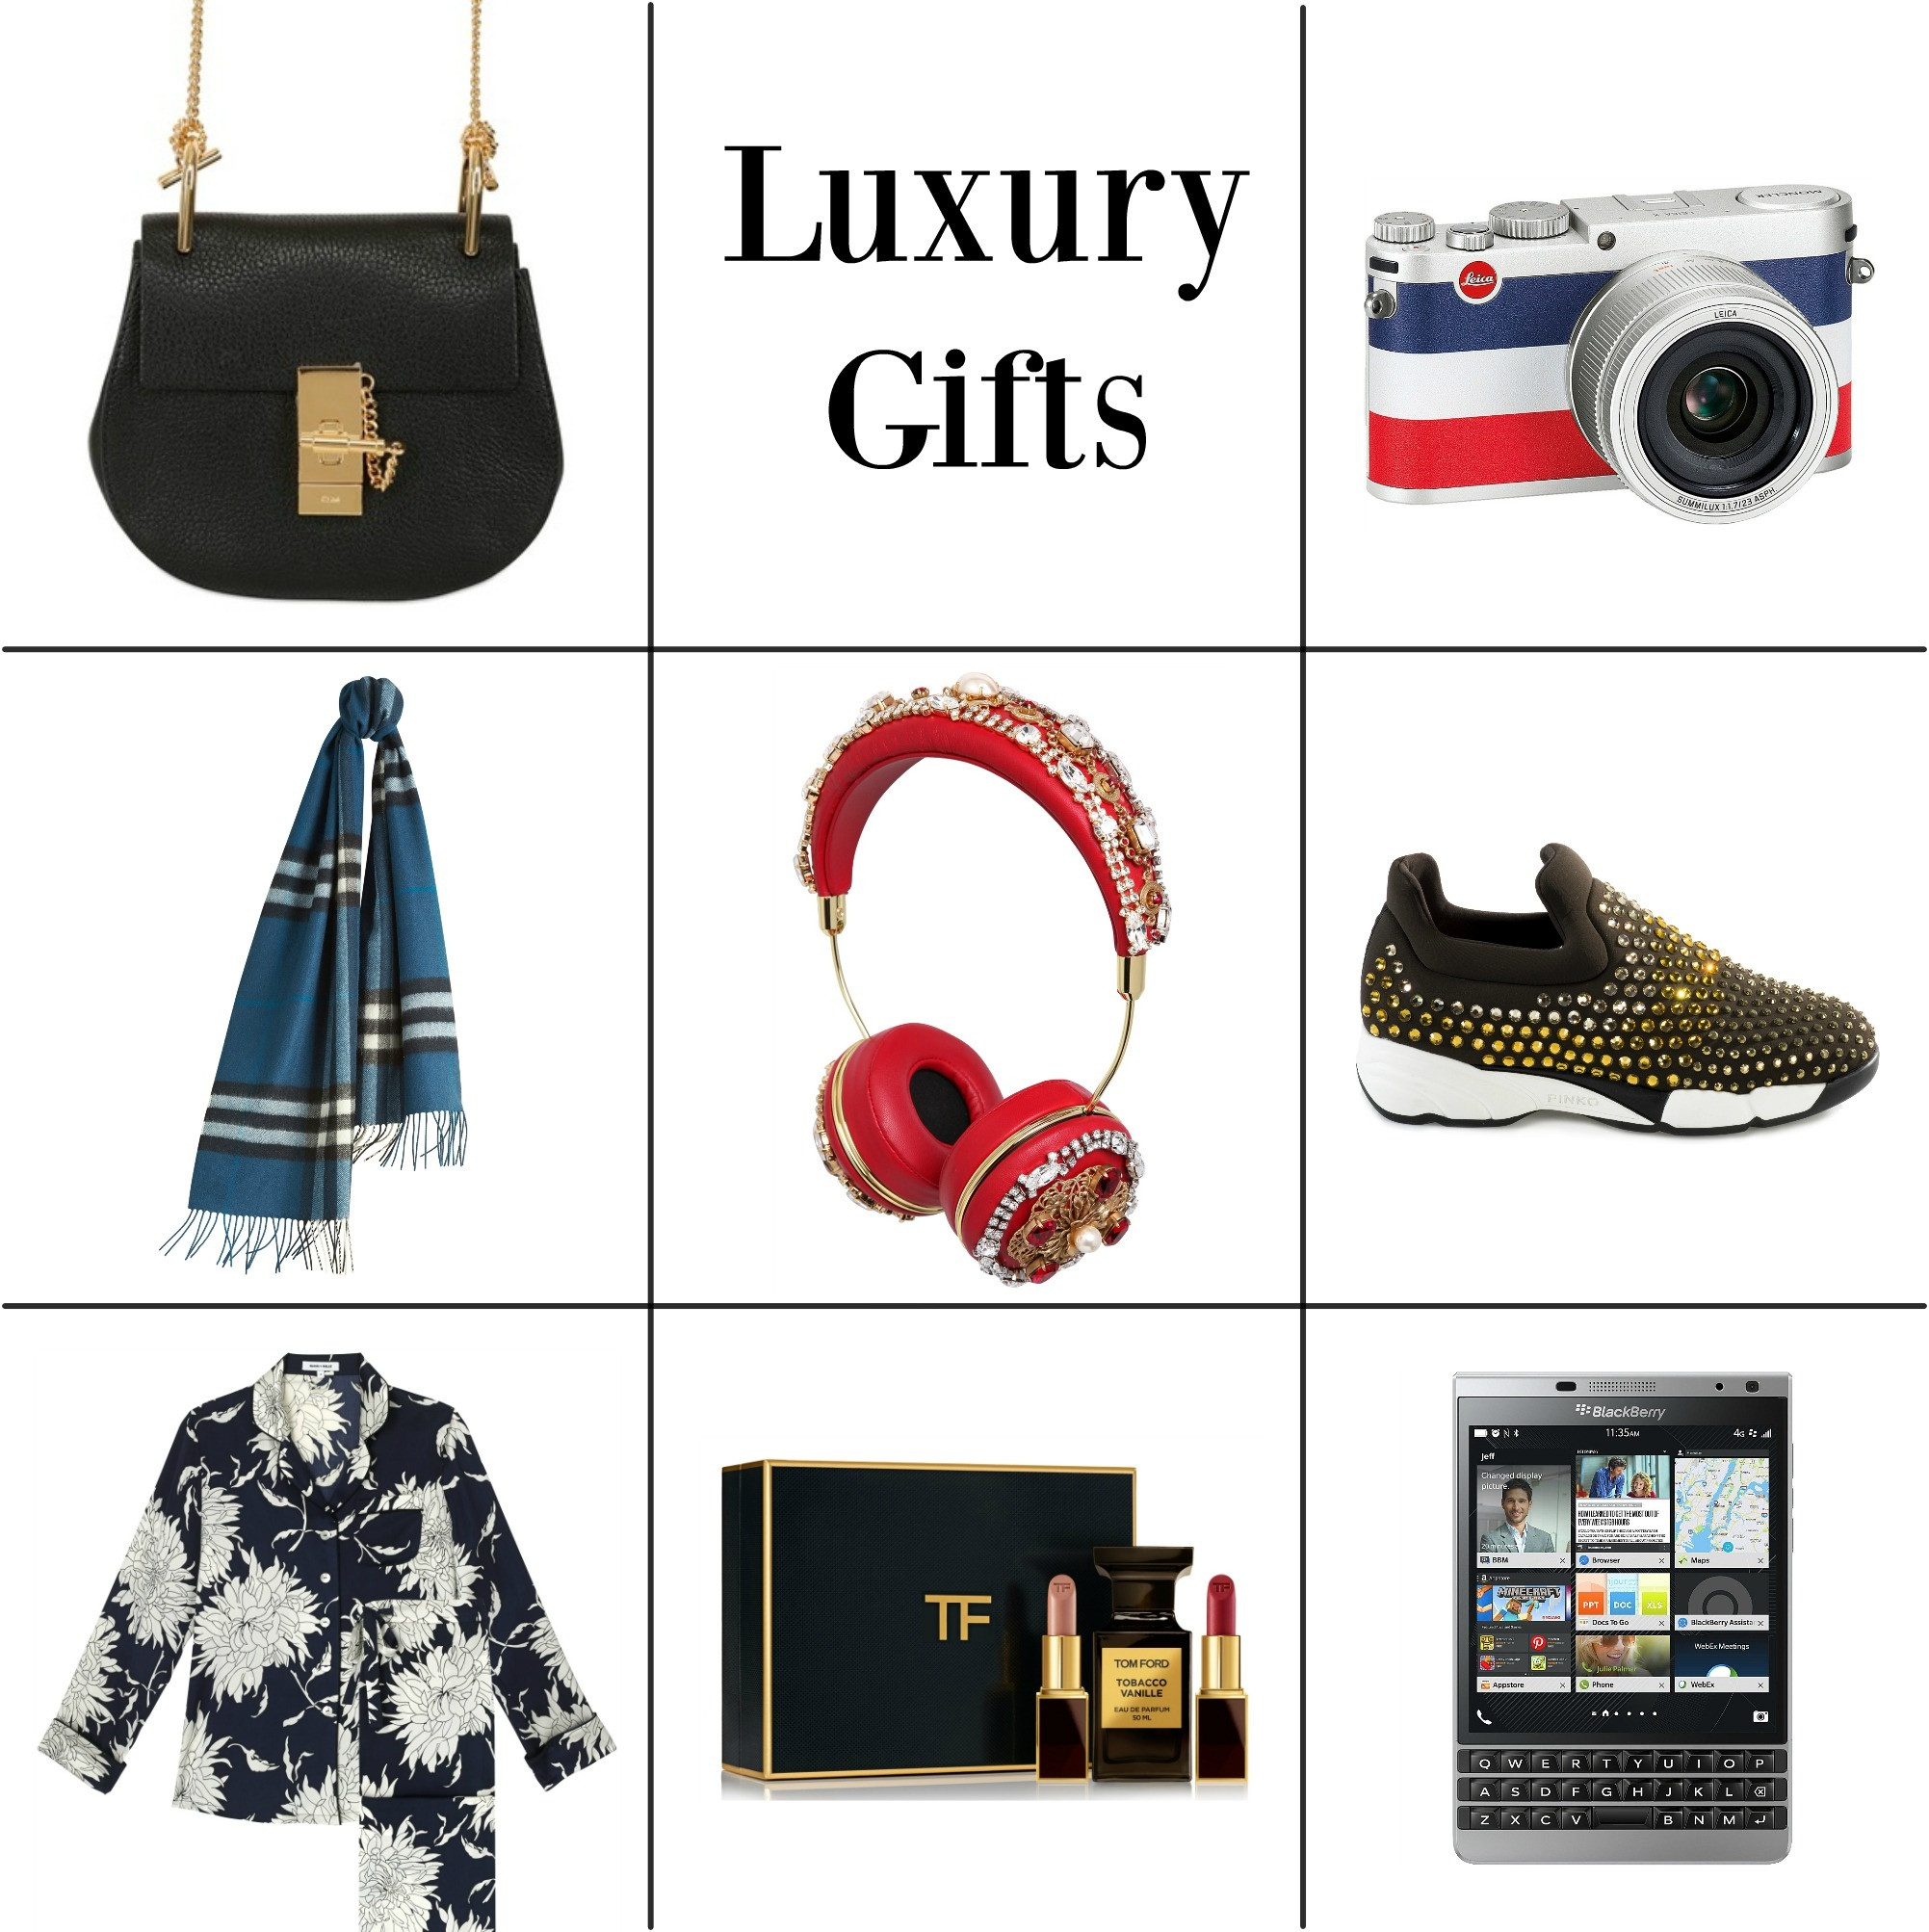 Best ideas about Luxury Gift Ideas For Her . Save or Pin Luxury Gift Ideas Now.